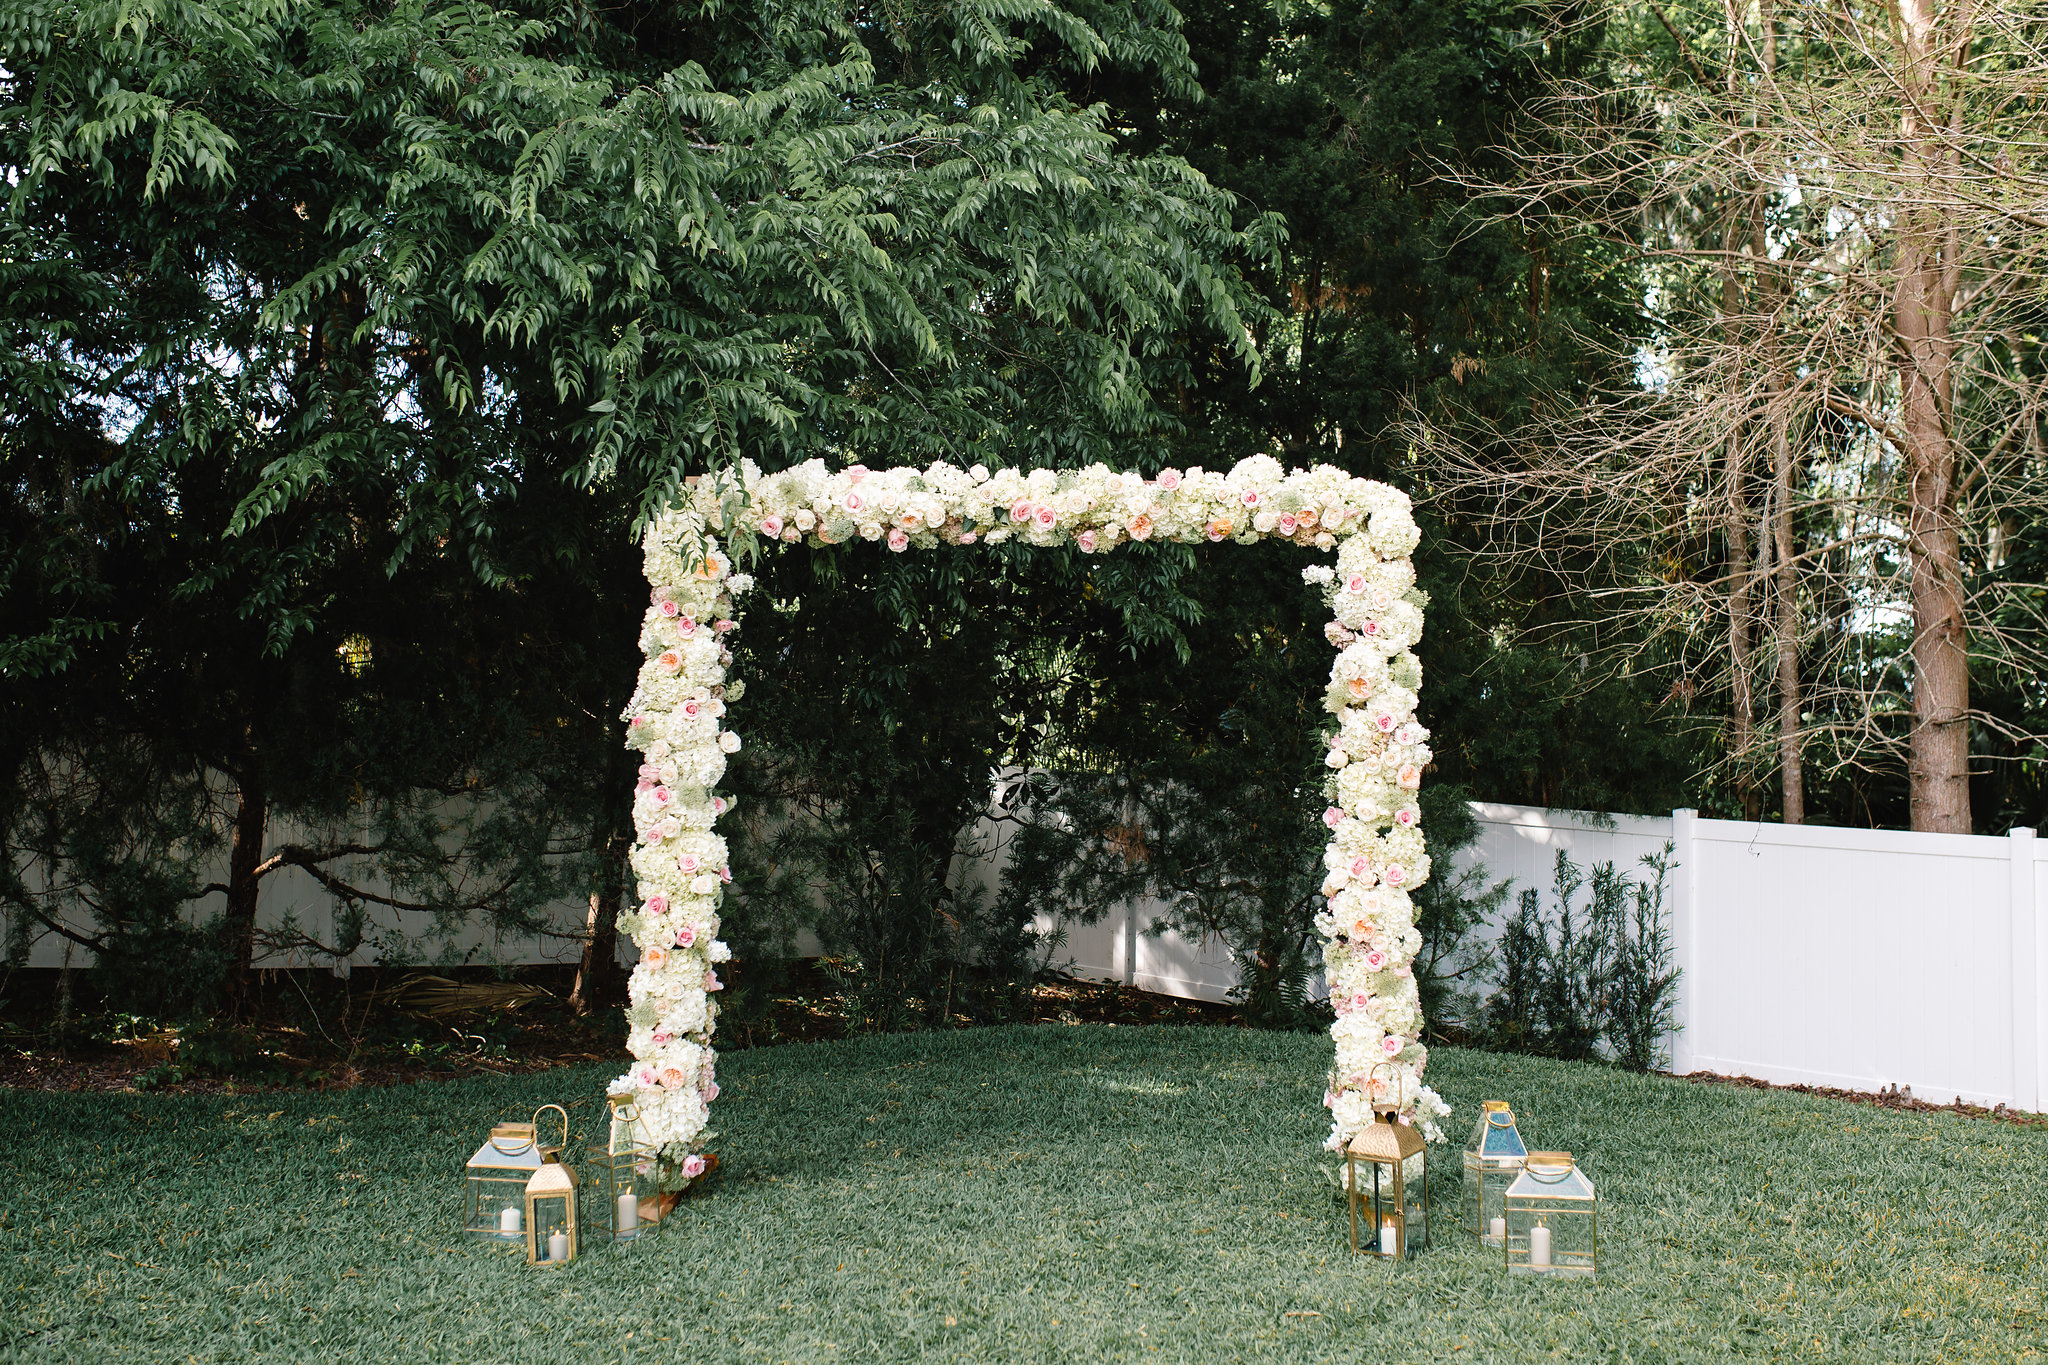 Blush and peach ceremony arch with hydrangea, garden roses and queen anne's lace  Blush & White Garden wedding at Luxmore Grande Estate in Orlando, Florida  Orlando Wedding Planner Blue Ribbon Weddings  Orlando Wedding Photographer JP Pratt Photography  Wedding Ceremony & Reception at Luxmore Grande Estate